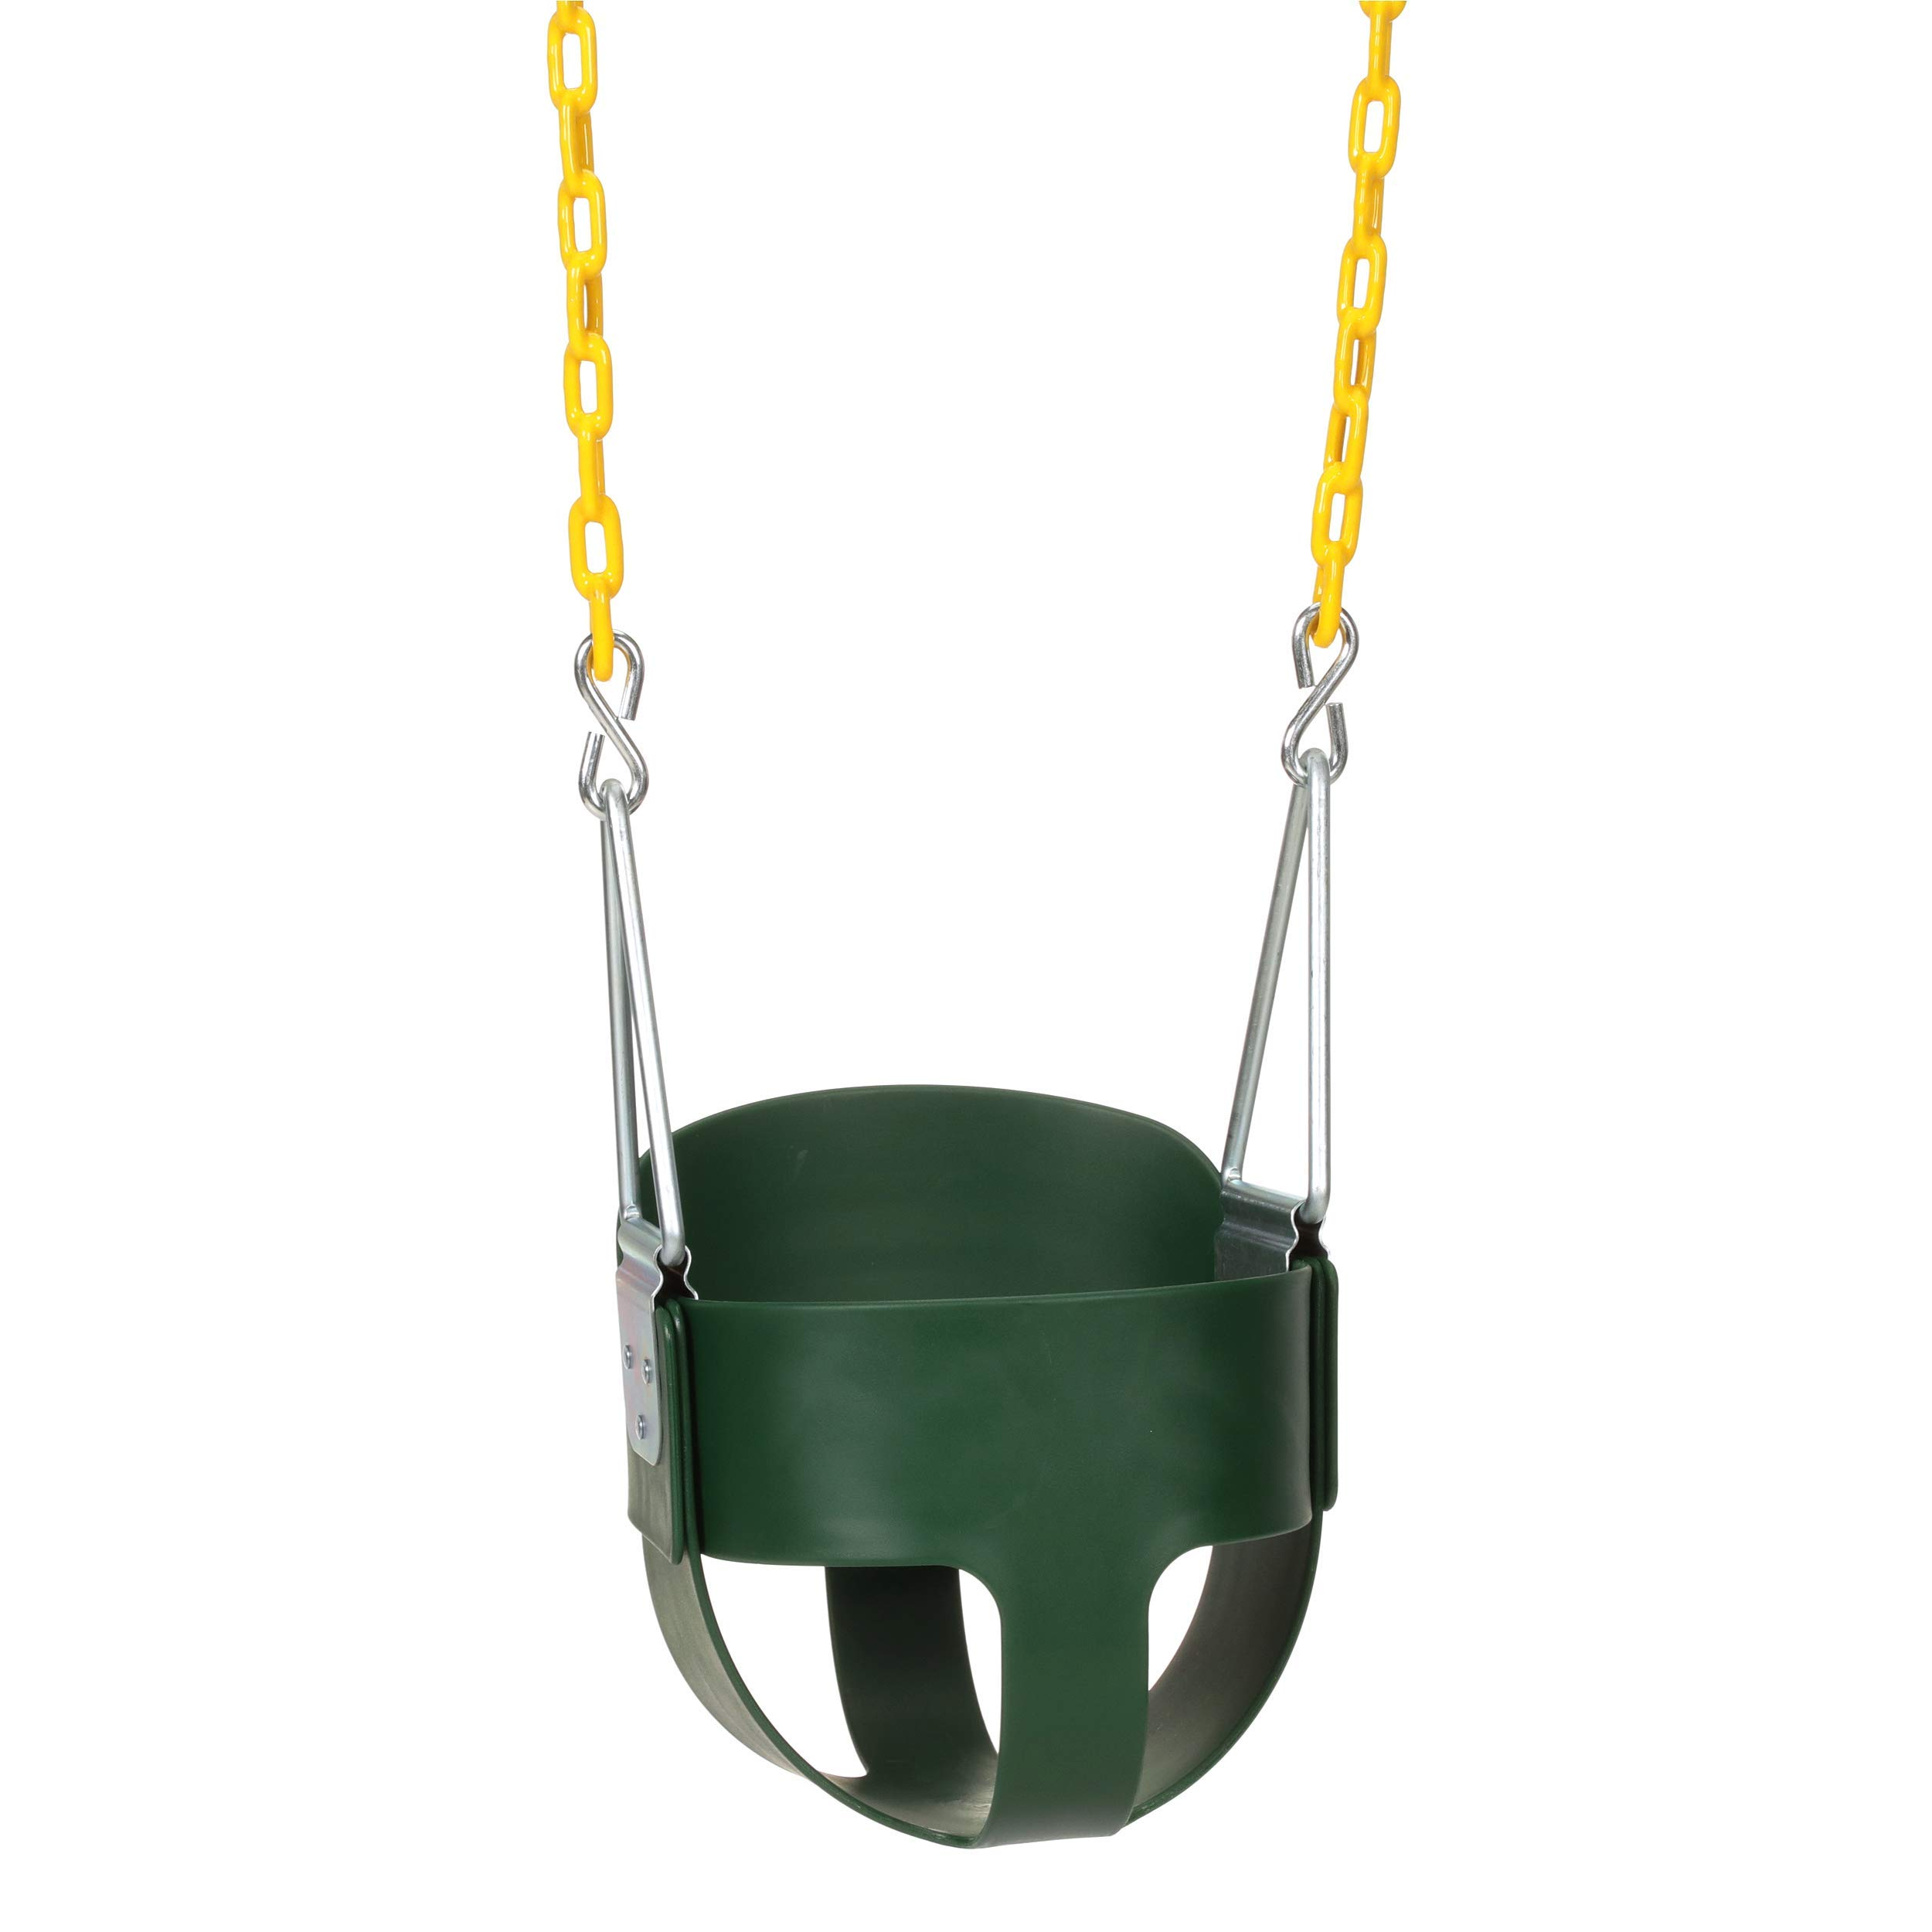 Eastern Jungle Gym Heavy-Duty High Back Full Bucket Toddler Swing Seat with Coated Swing Chains Fully Assembled by Eastern Jungle Gym